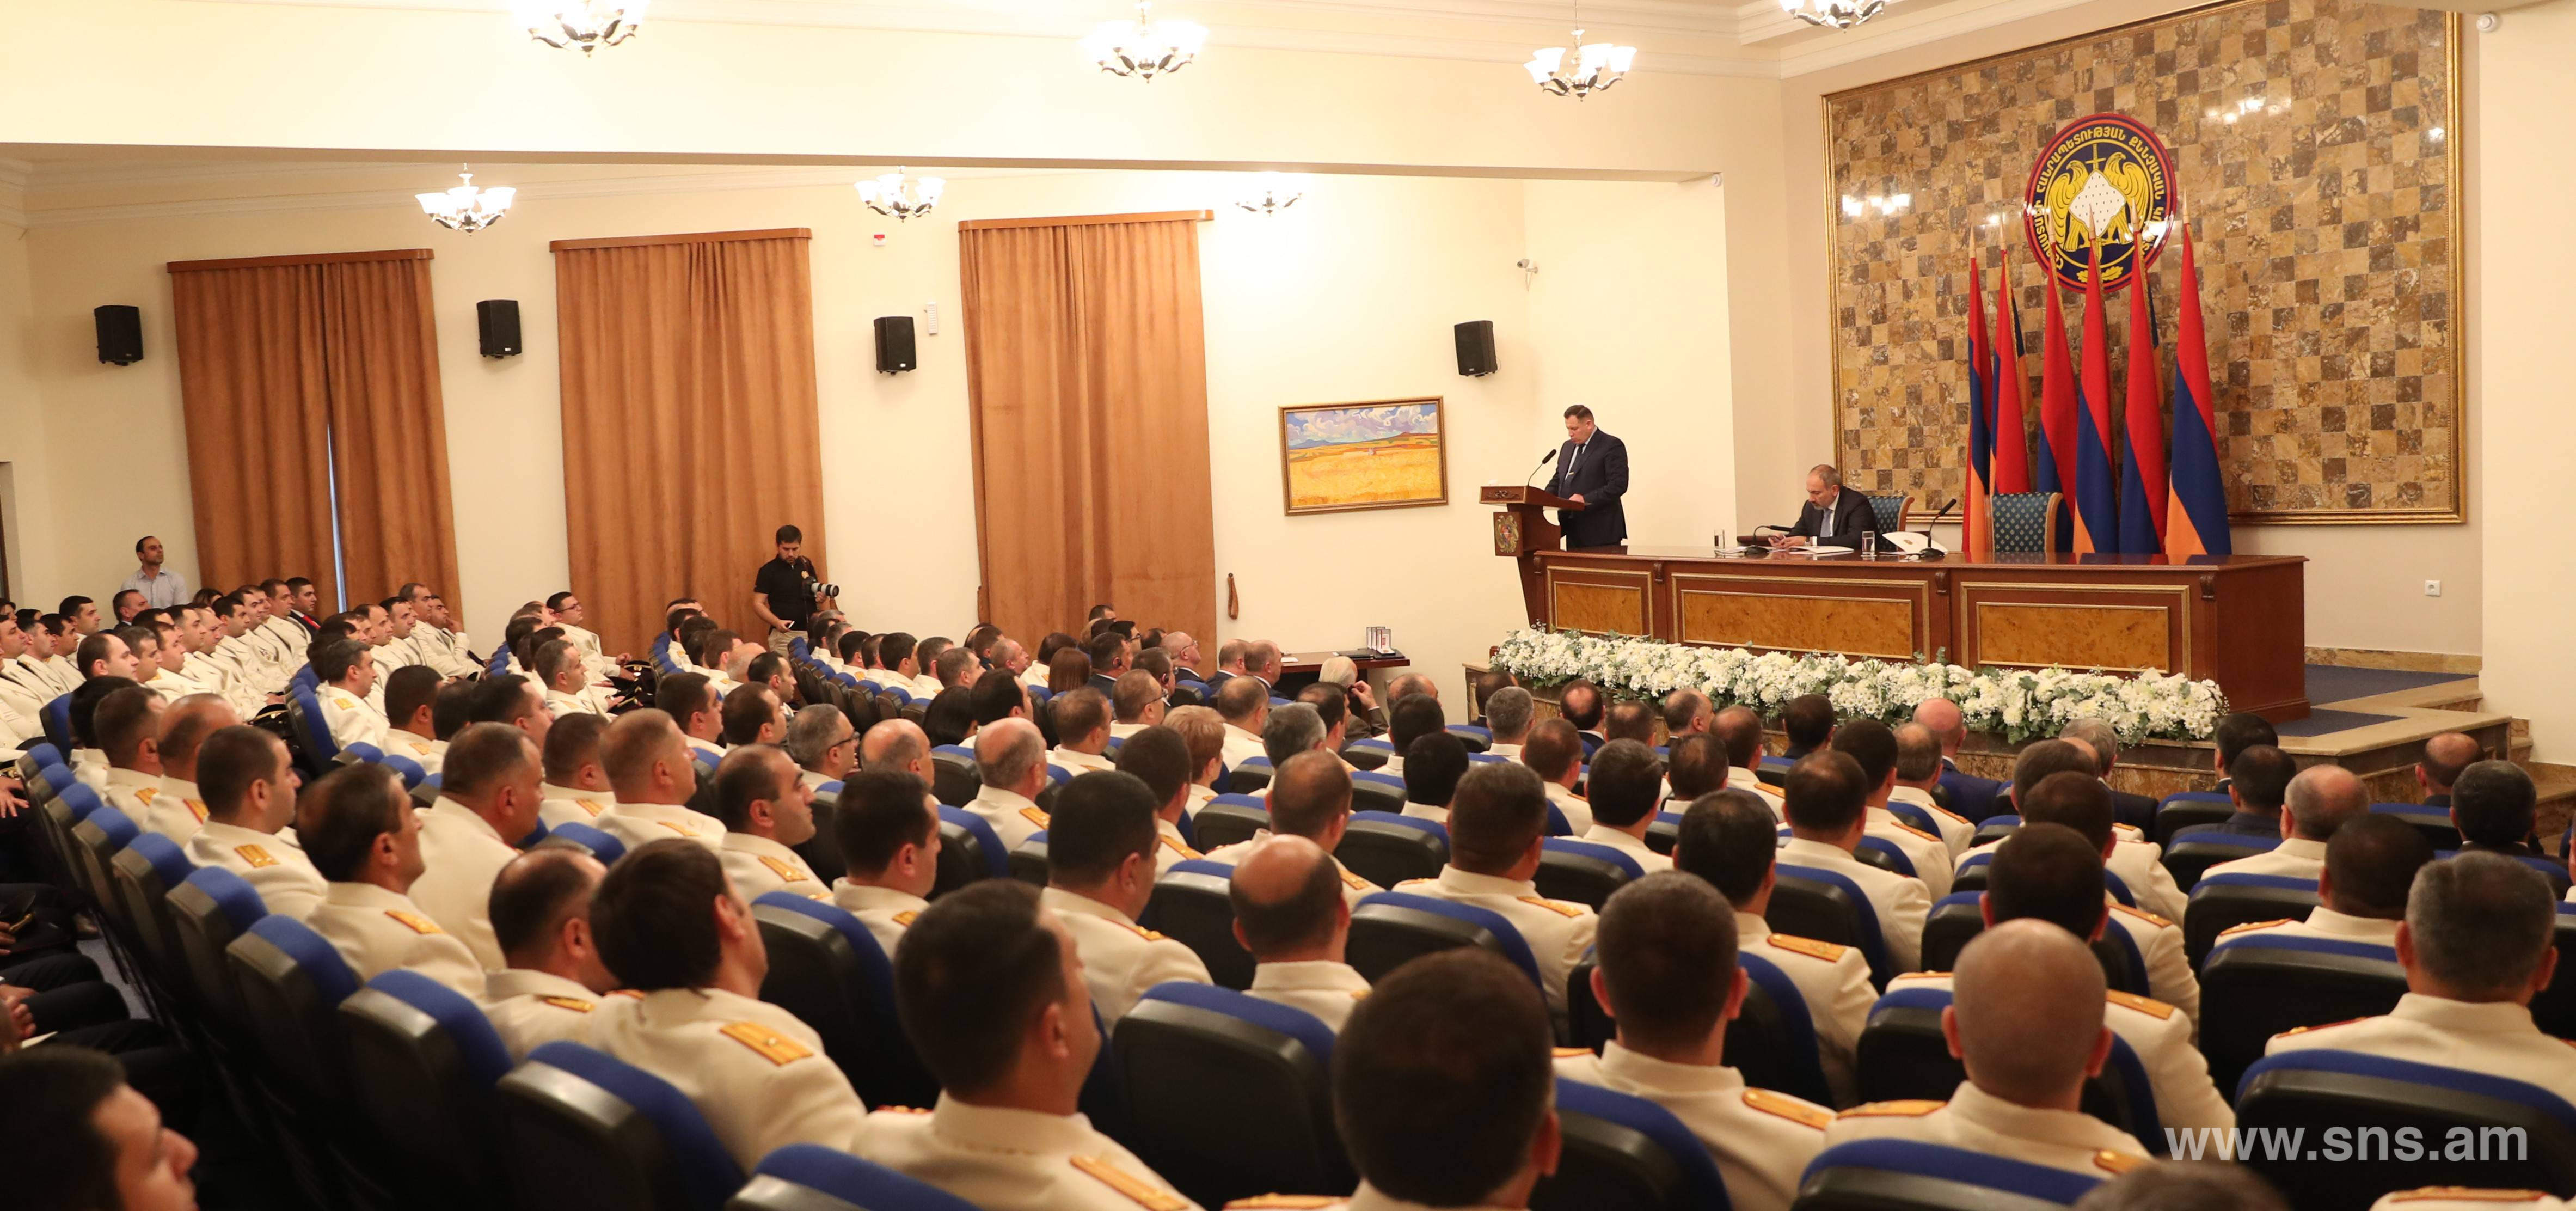 E. Martirosyan participated in the ceremonial event on the occasion of 5th anniversary of the formation of the RA Investigative Committee.